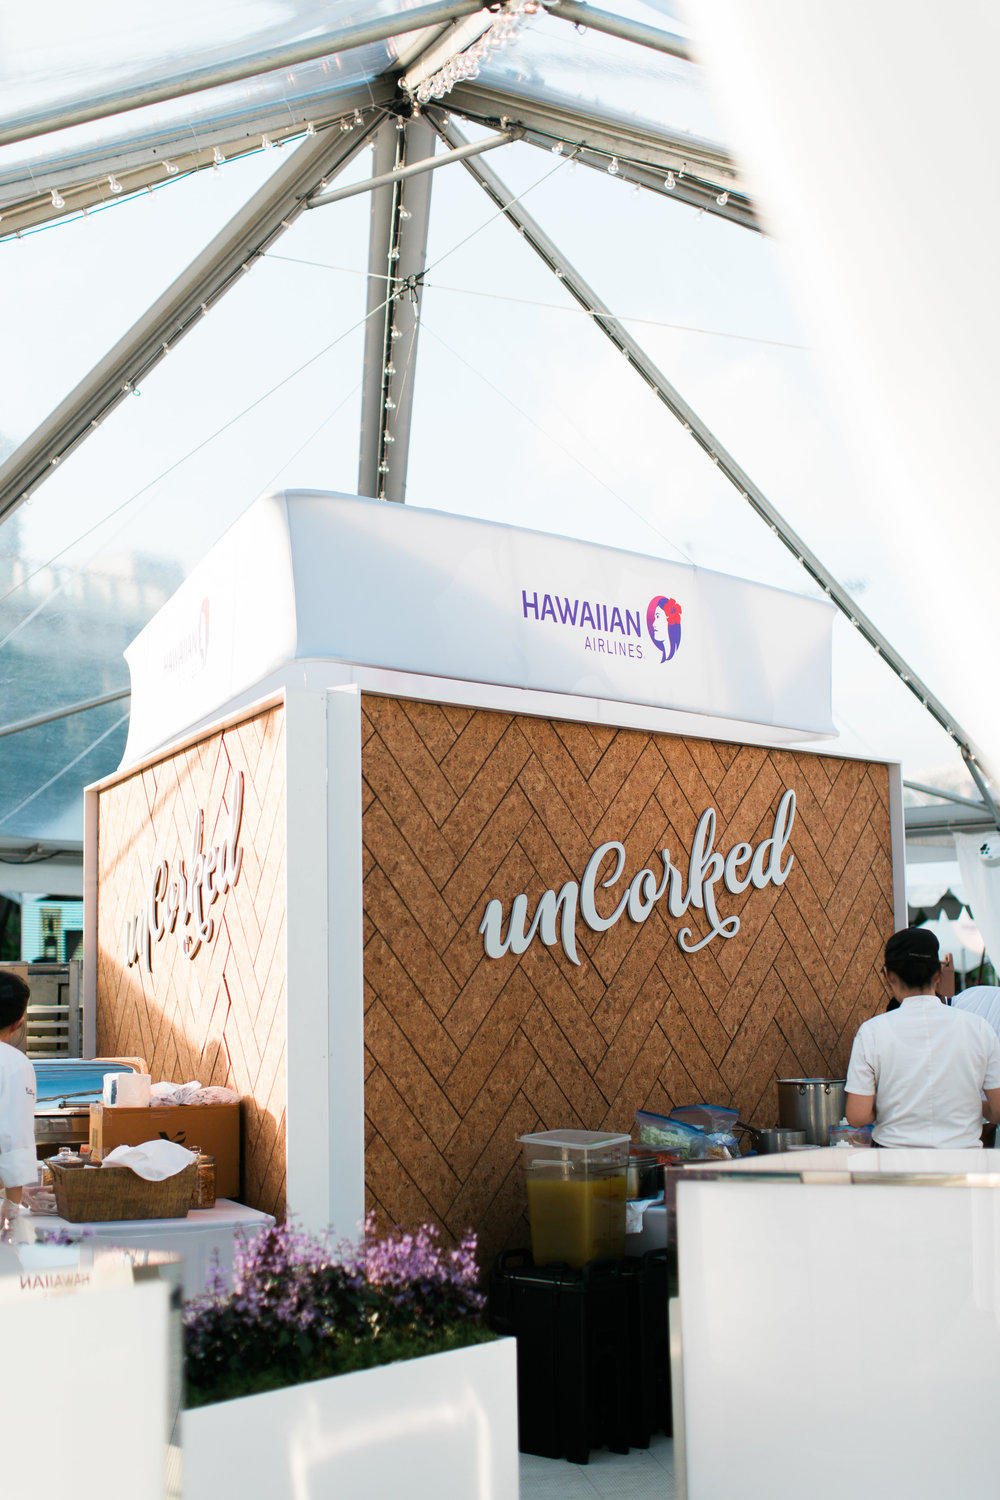 Curate-HFWF-Uncorked-Backdrop-Angle.jpg